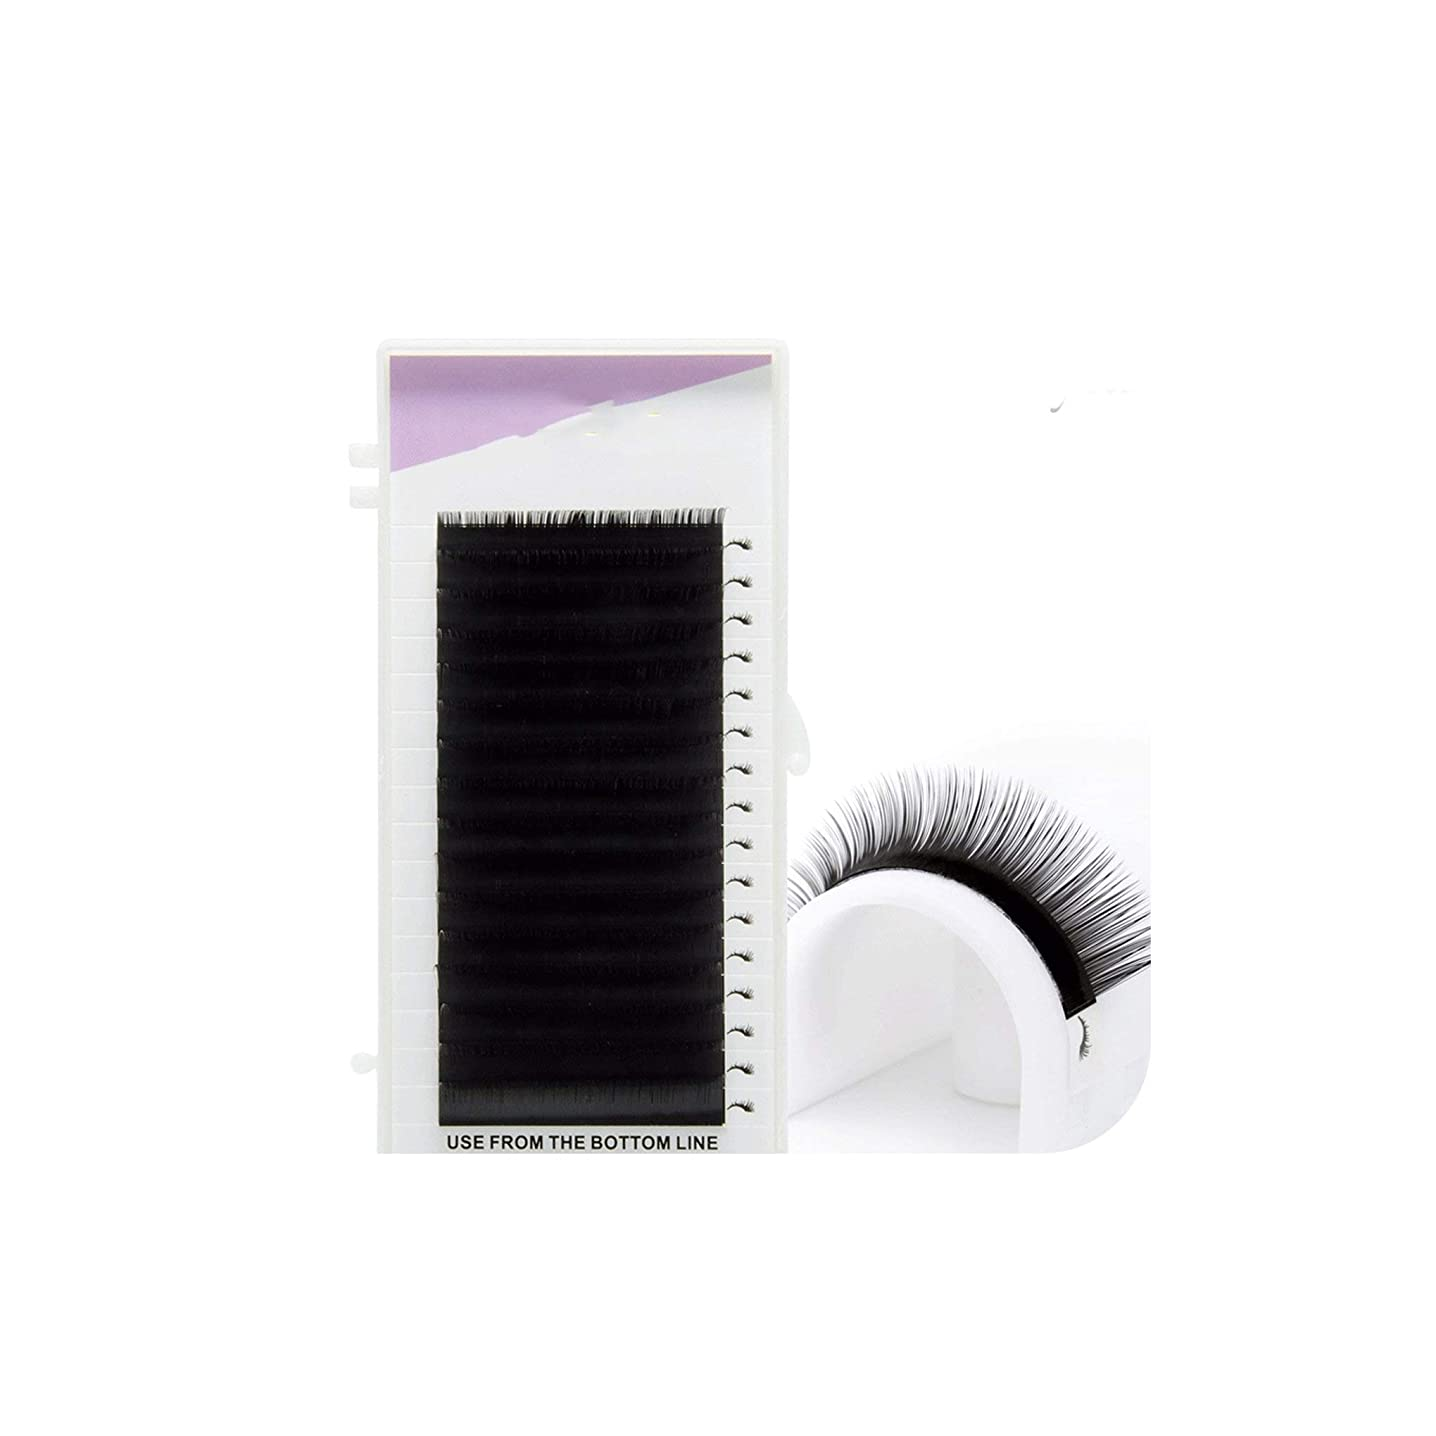 1 case eyelash extension mink,individual eyelash extension,natural eyelashes,false eyelashes,C,0.15mm,10mm